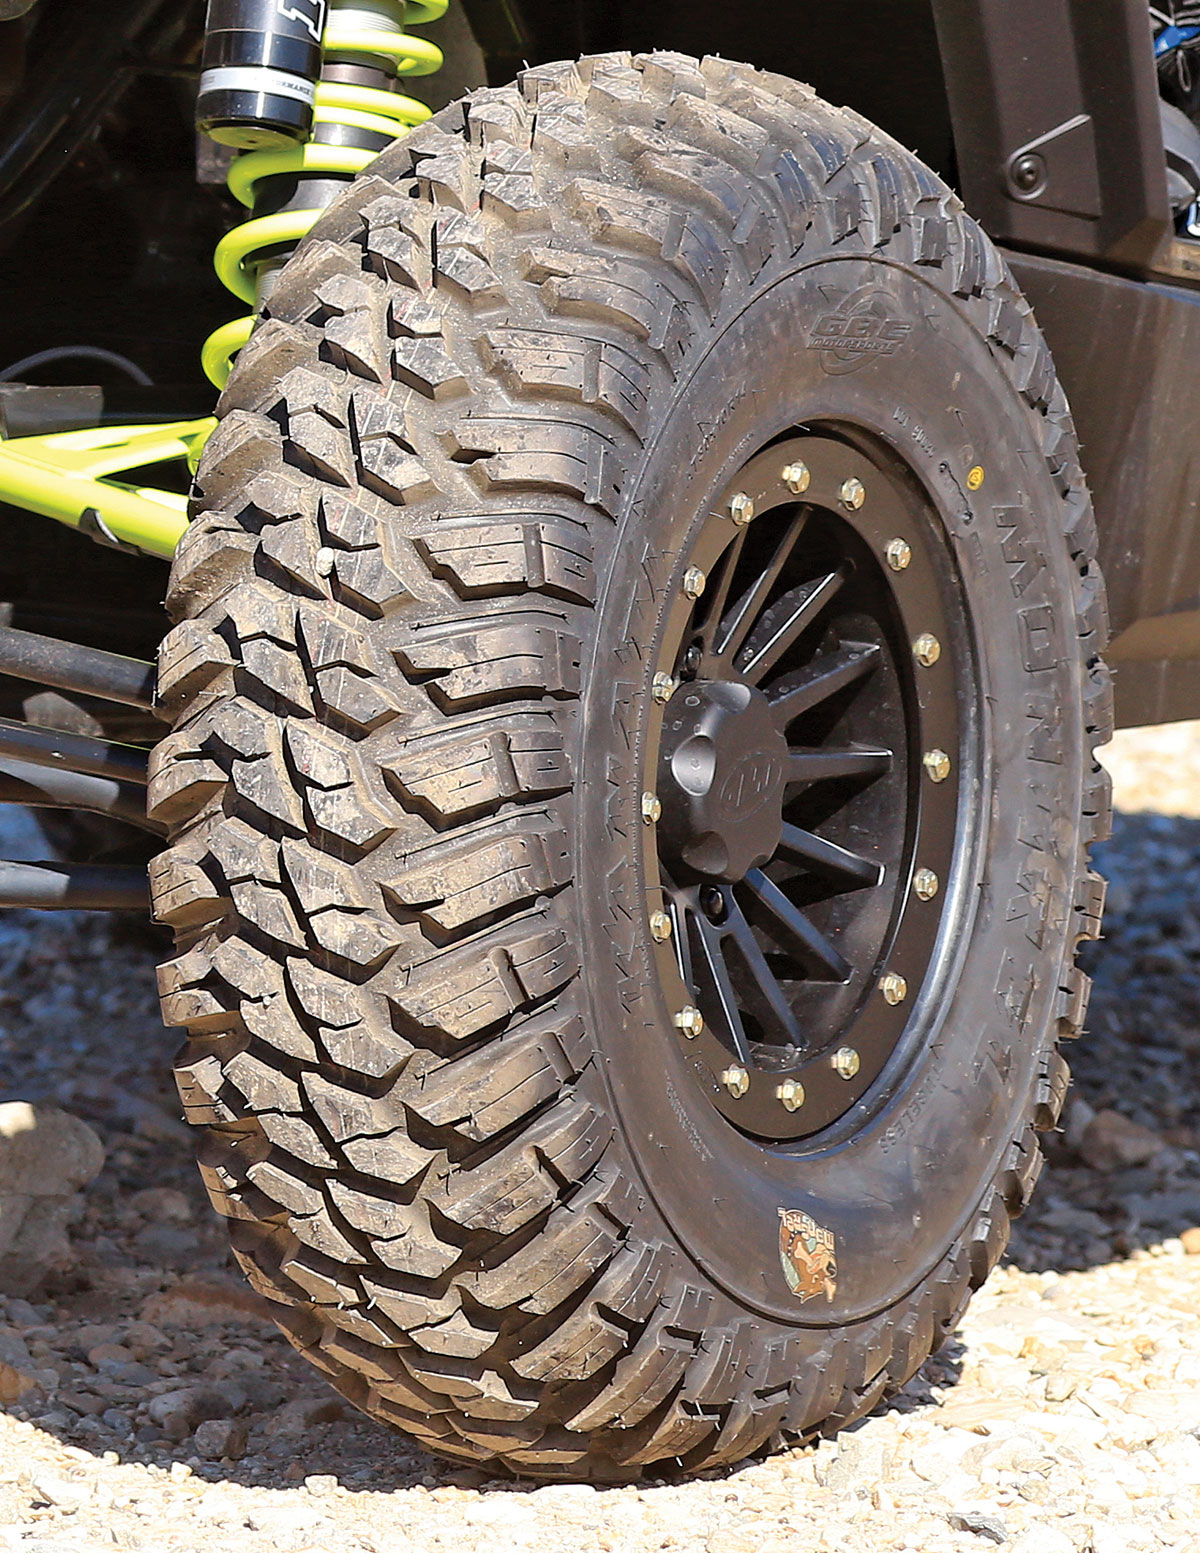 When we first saw the GBC Kanati Mongrel tires in action, we wondered if they were an automotive tire adapted to UTV use. Nope, they are designed for ATVs and UTVs.